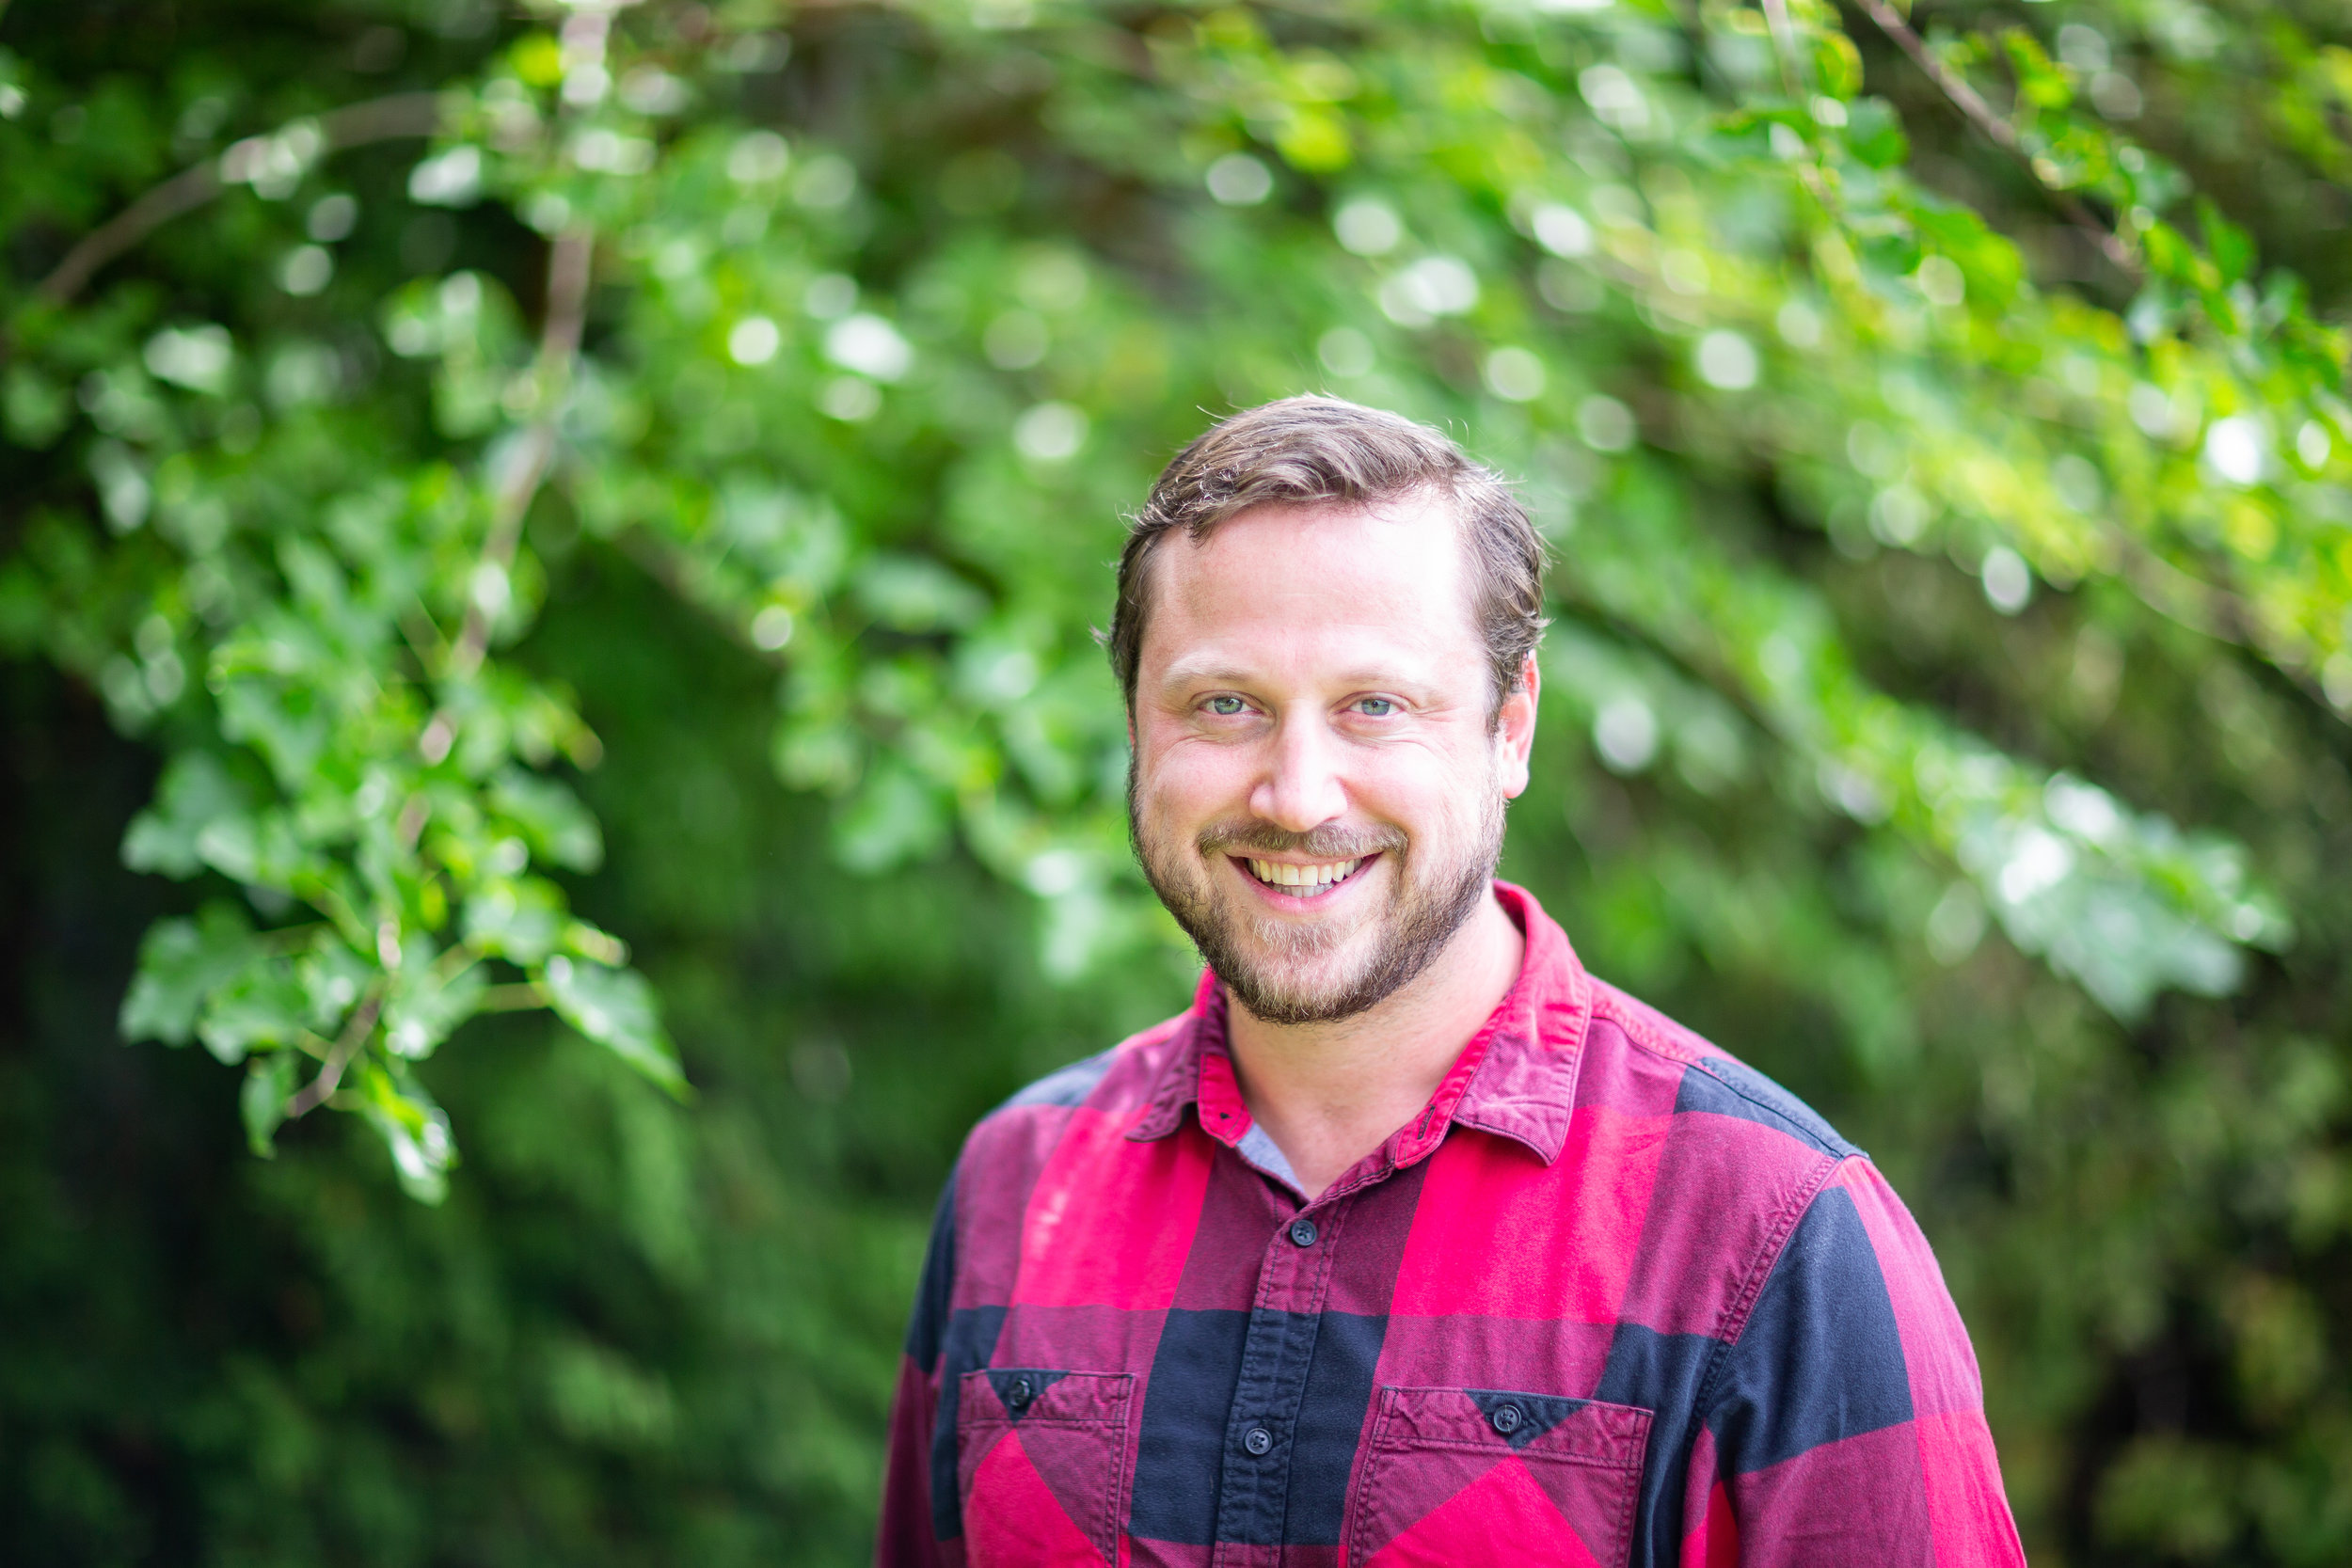 Nick Raymond - INTERIM PRINCIPAL | THE MILDENHALL SCHOOLNick is our Interim Principal for 2019-2020. He holds his Montessori training from NAMTA and Toronto Montessori Institute, his B.A. from Dalhousie University and his B.Ed. from Lakehead University.